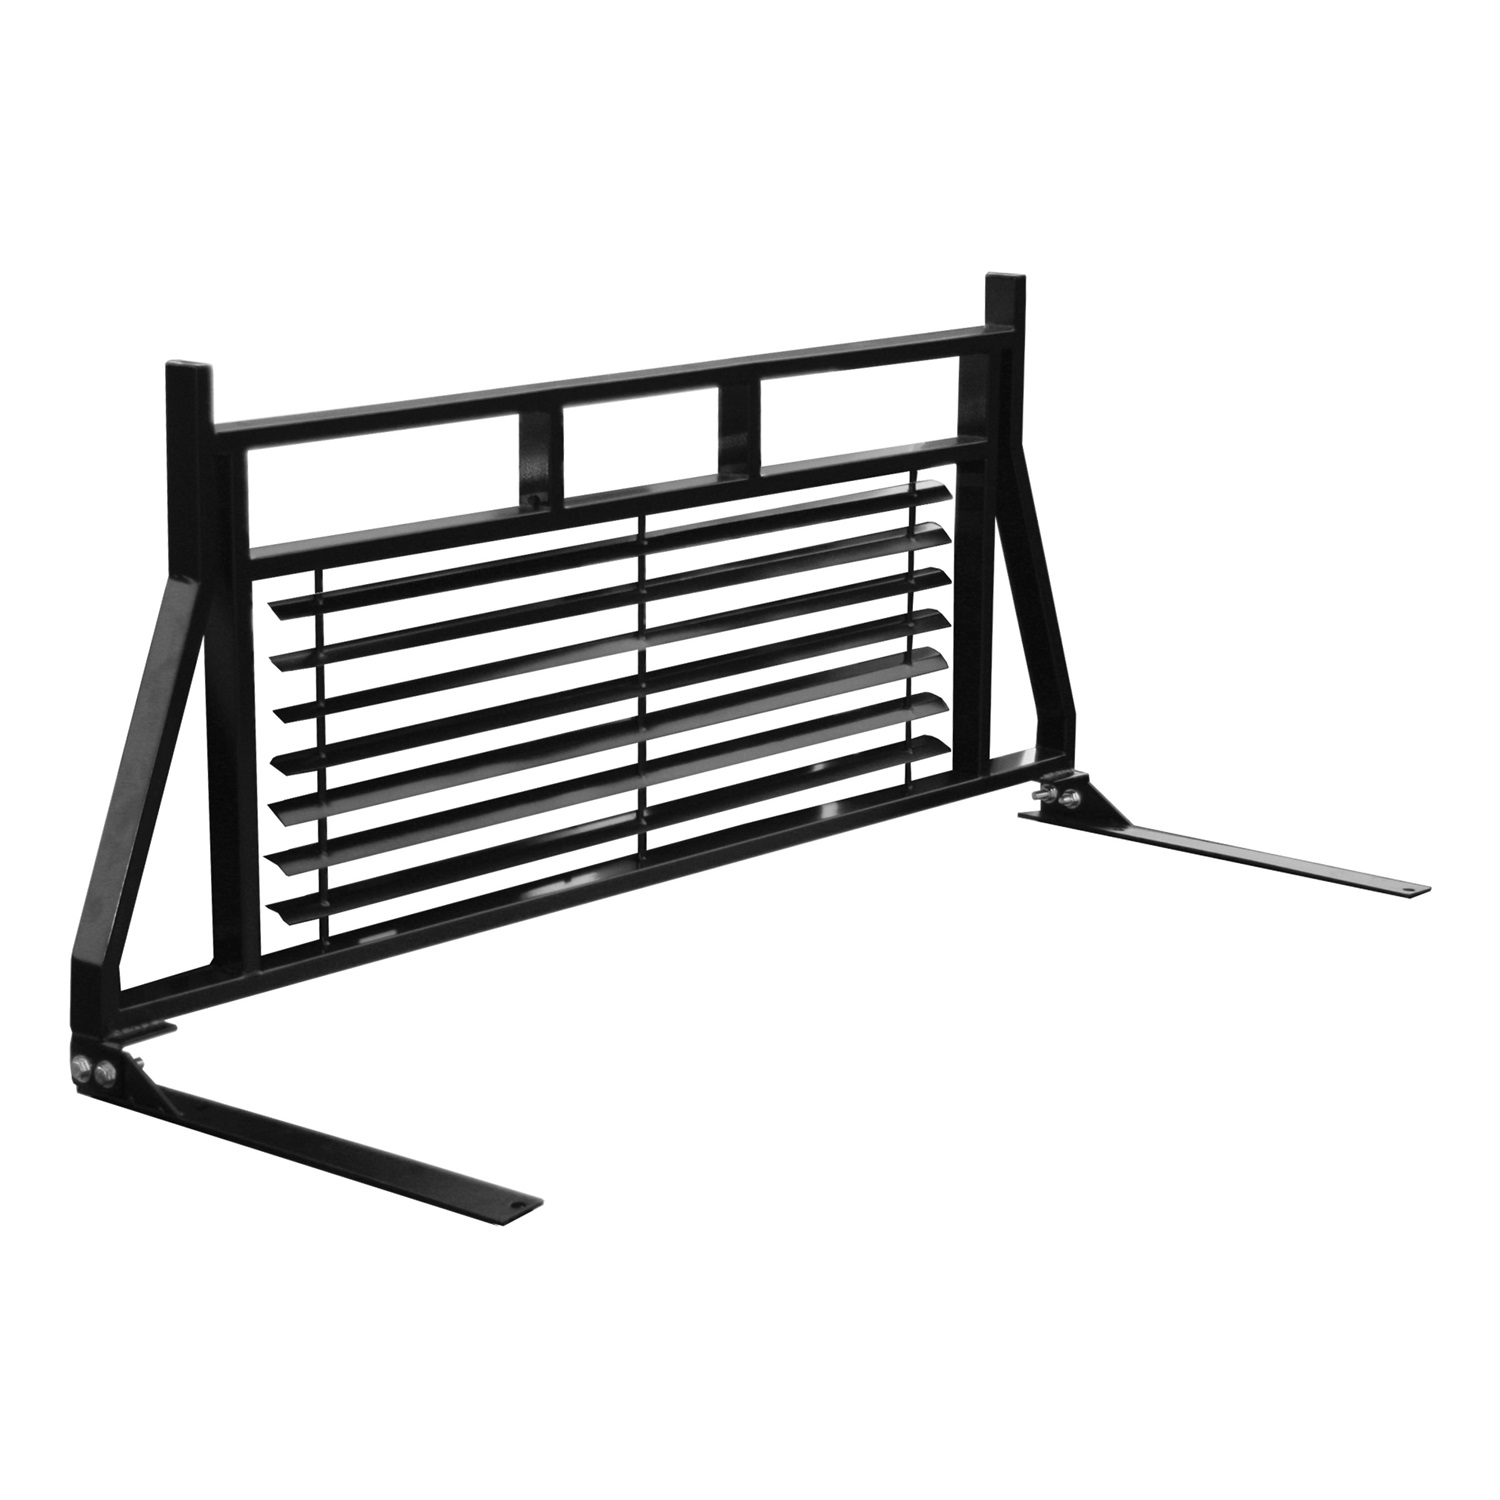 ARIES 111001 99-13 FORD SUPERDUTY (LARGER, MULTI-FIT BLACK) HEADACHE RACK - BLACK